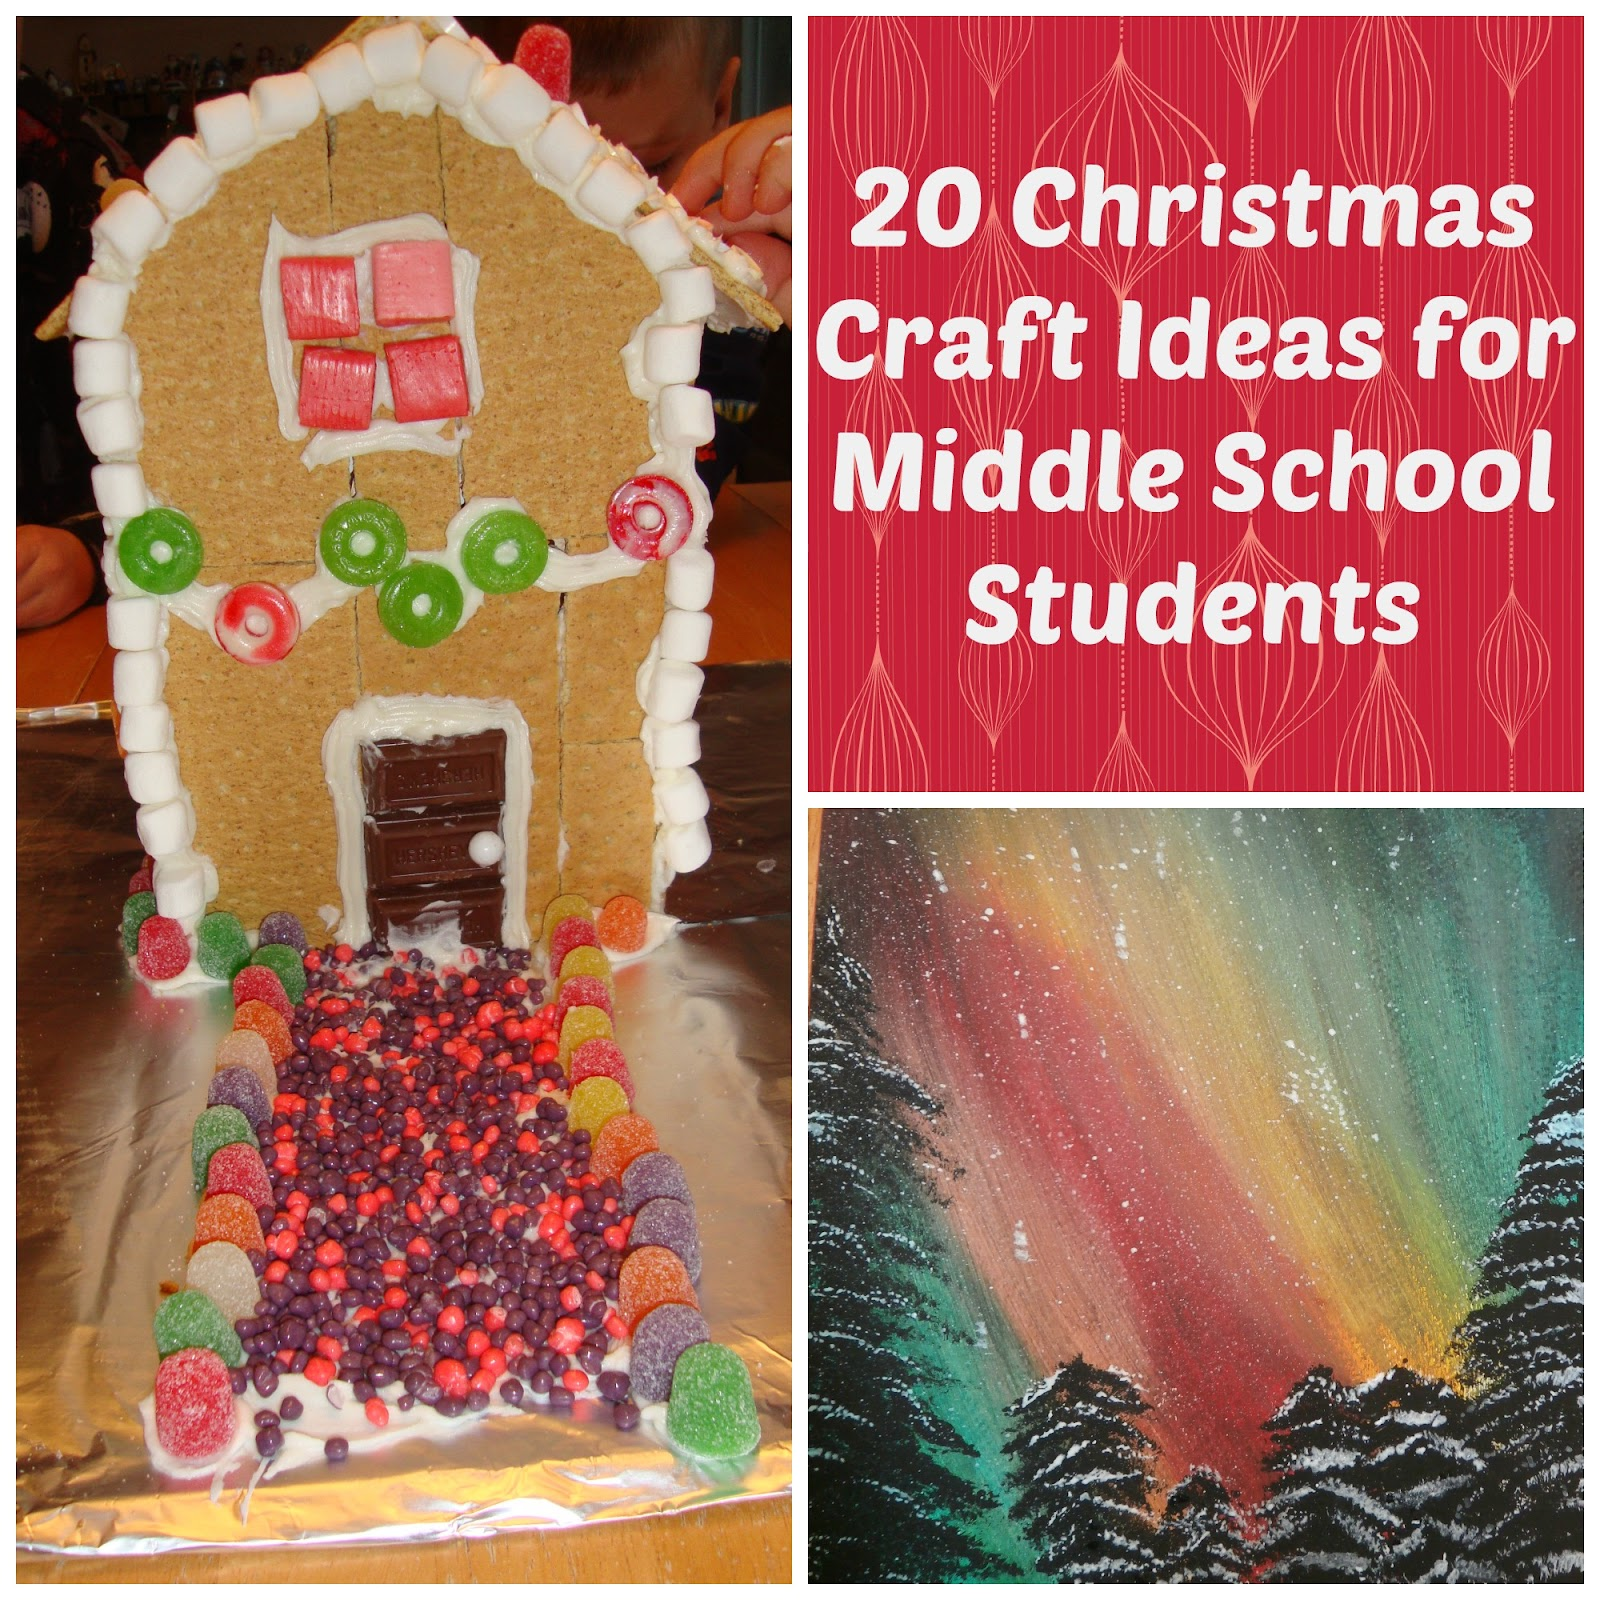 Our Unschooling Journey Through Life Christmas Crafts For Middle School Students